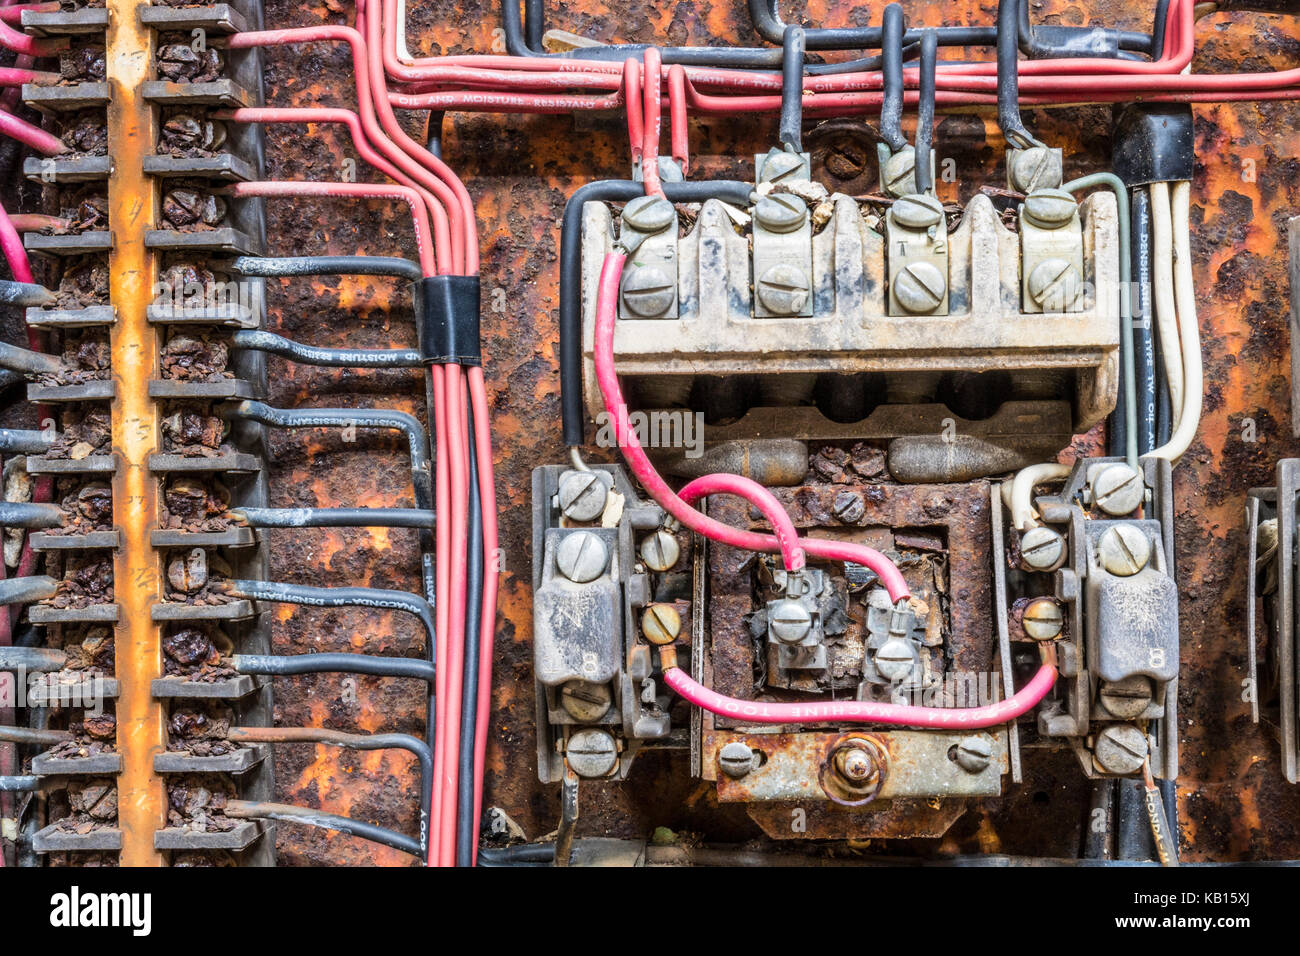 Old Electrical Panel Stock Photos Zinsco Fuse Box Rusted With Fuses And Contacts In An Abandoned Automobile Factory Iv